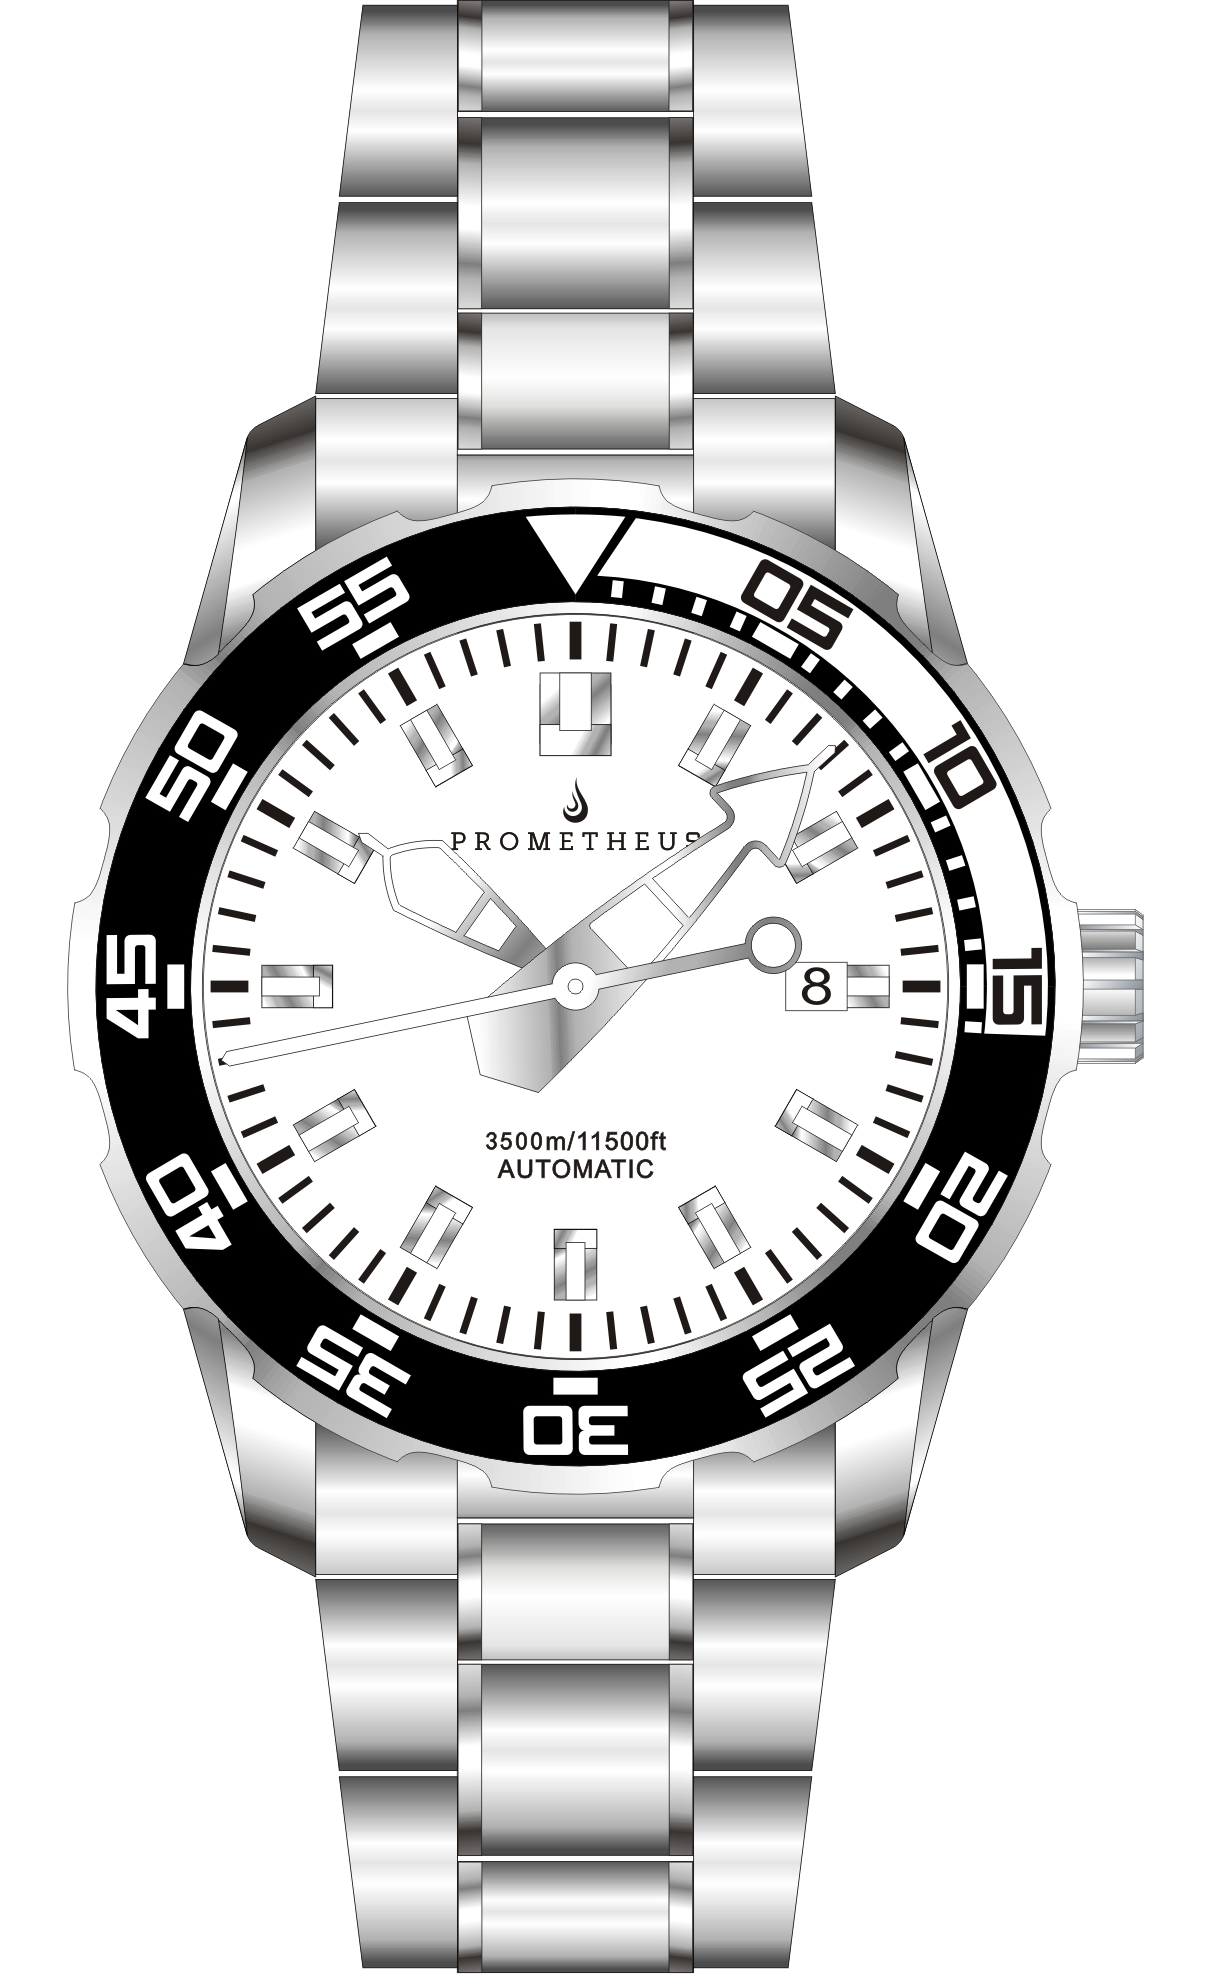 Prometheus Poseidon Stainless Steel White Bezel Lumed White Dial Modern Diver Hands 3500m Miyota 9015 Automatic Diver Watch PMTPWDMODERNDH